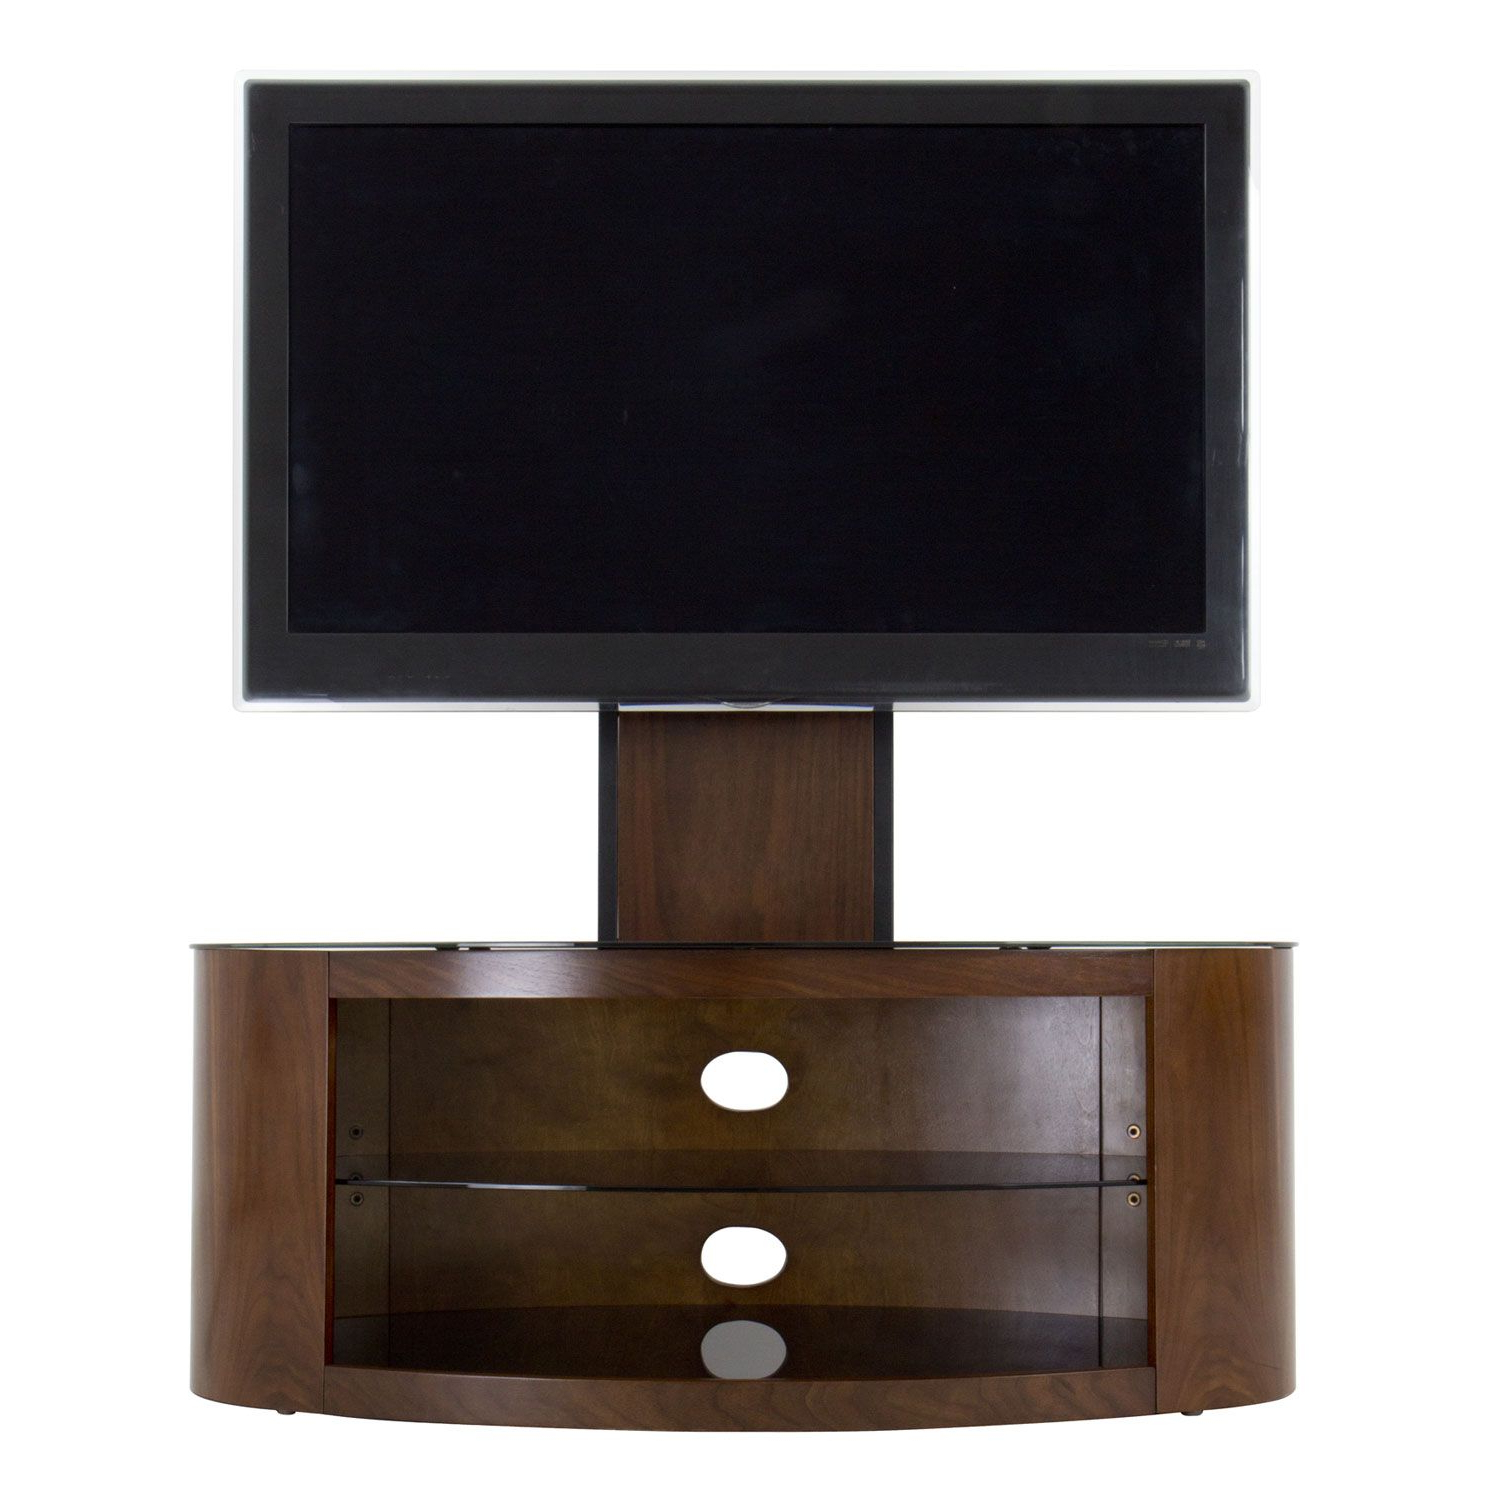 Buy The Avf Buckingham Walnut 100Cm Combination Tv Stand (View 3 of 20)